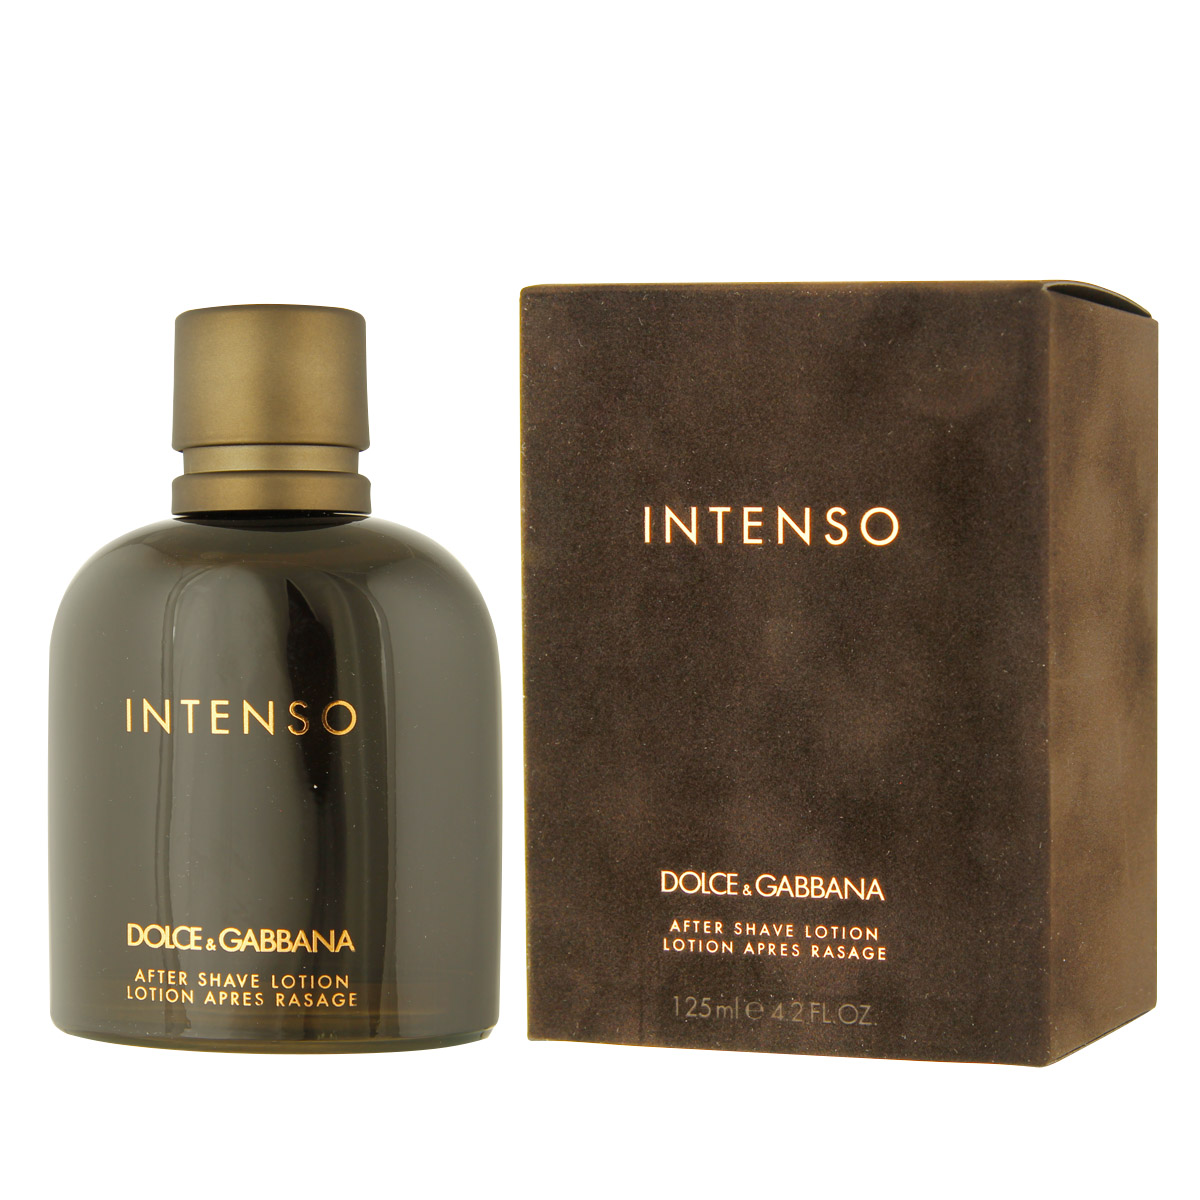 Dolce & Gabbana Pour Homme Intenso AS 125 ml M